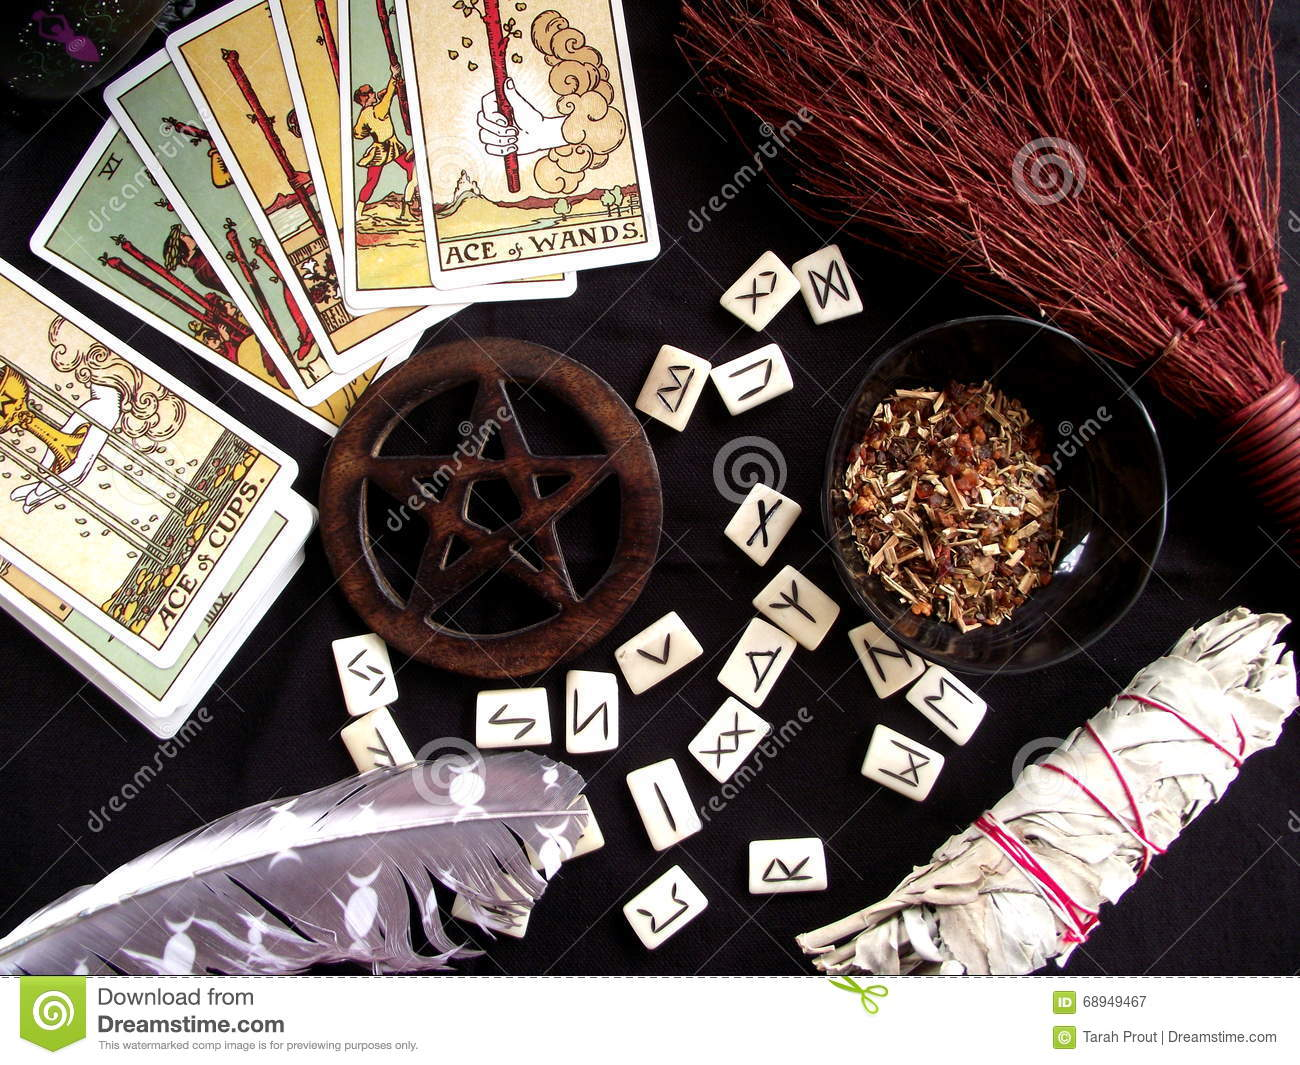 Wicca and spiritual items used in witchcraft rituals, spells and divination.